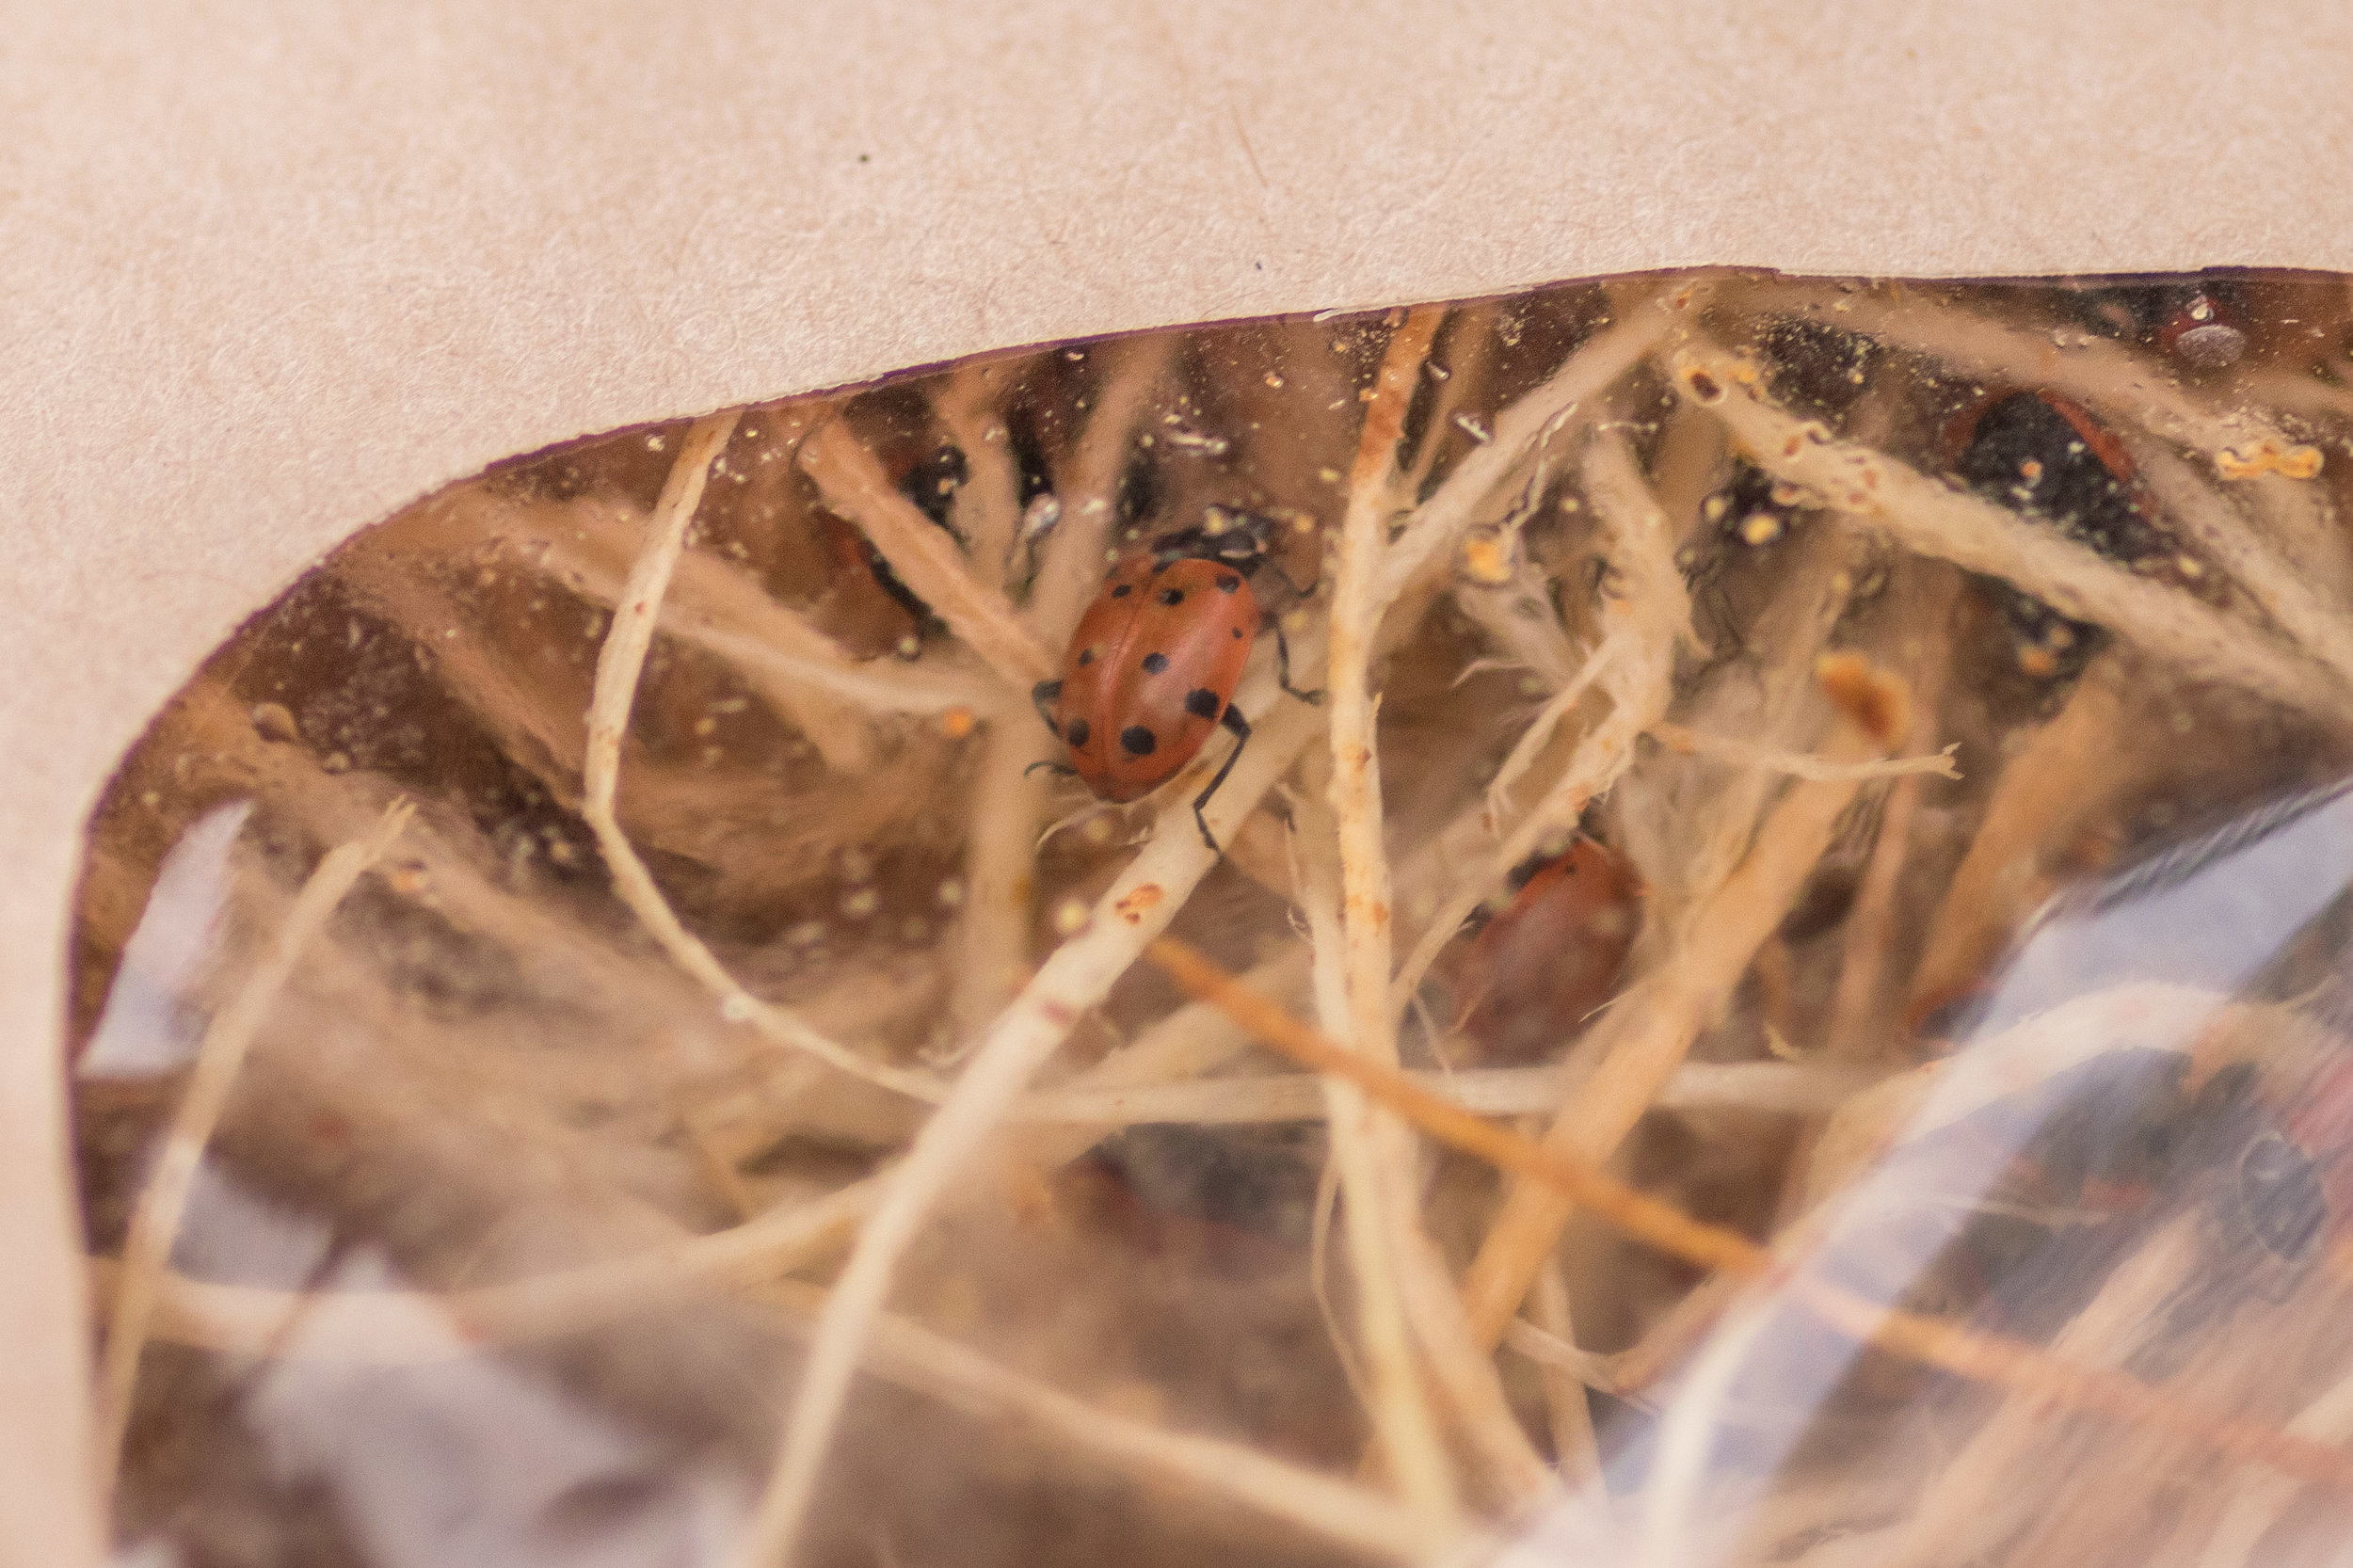 Ladybugs in their bag